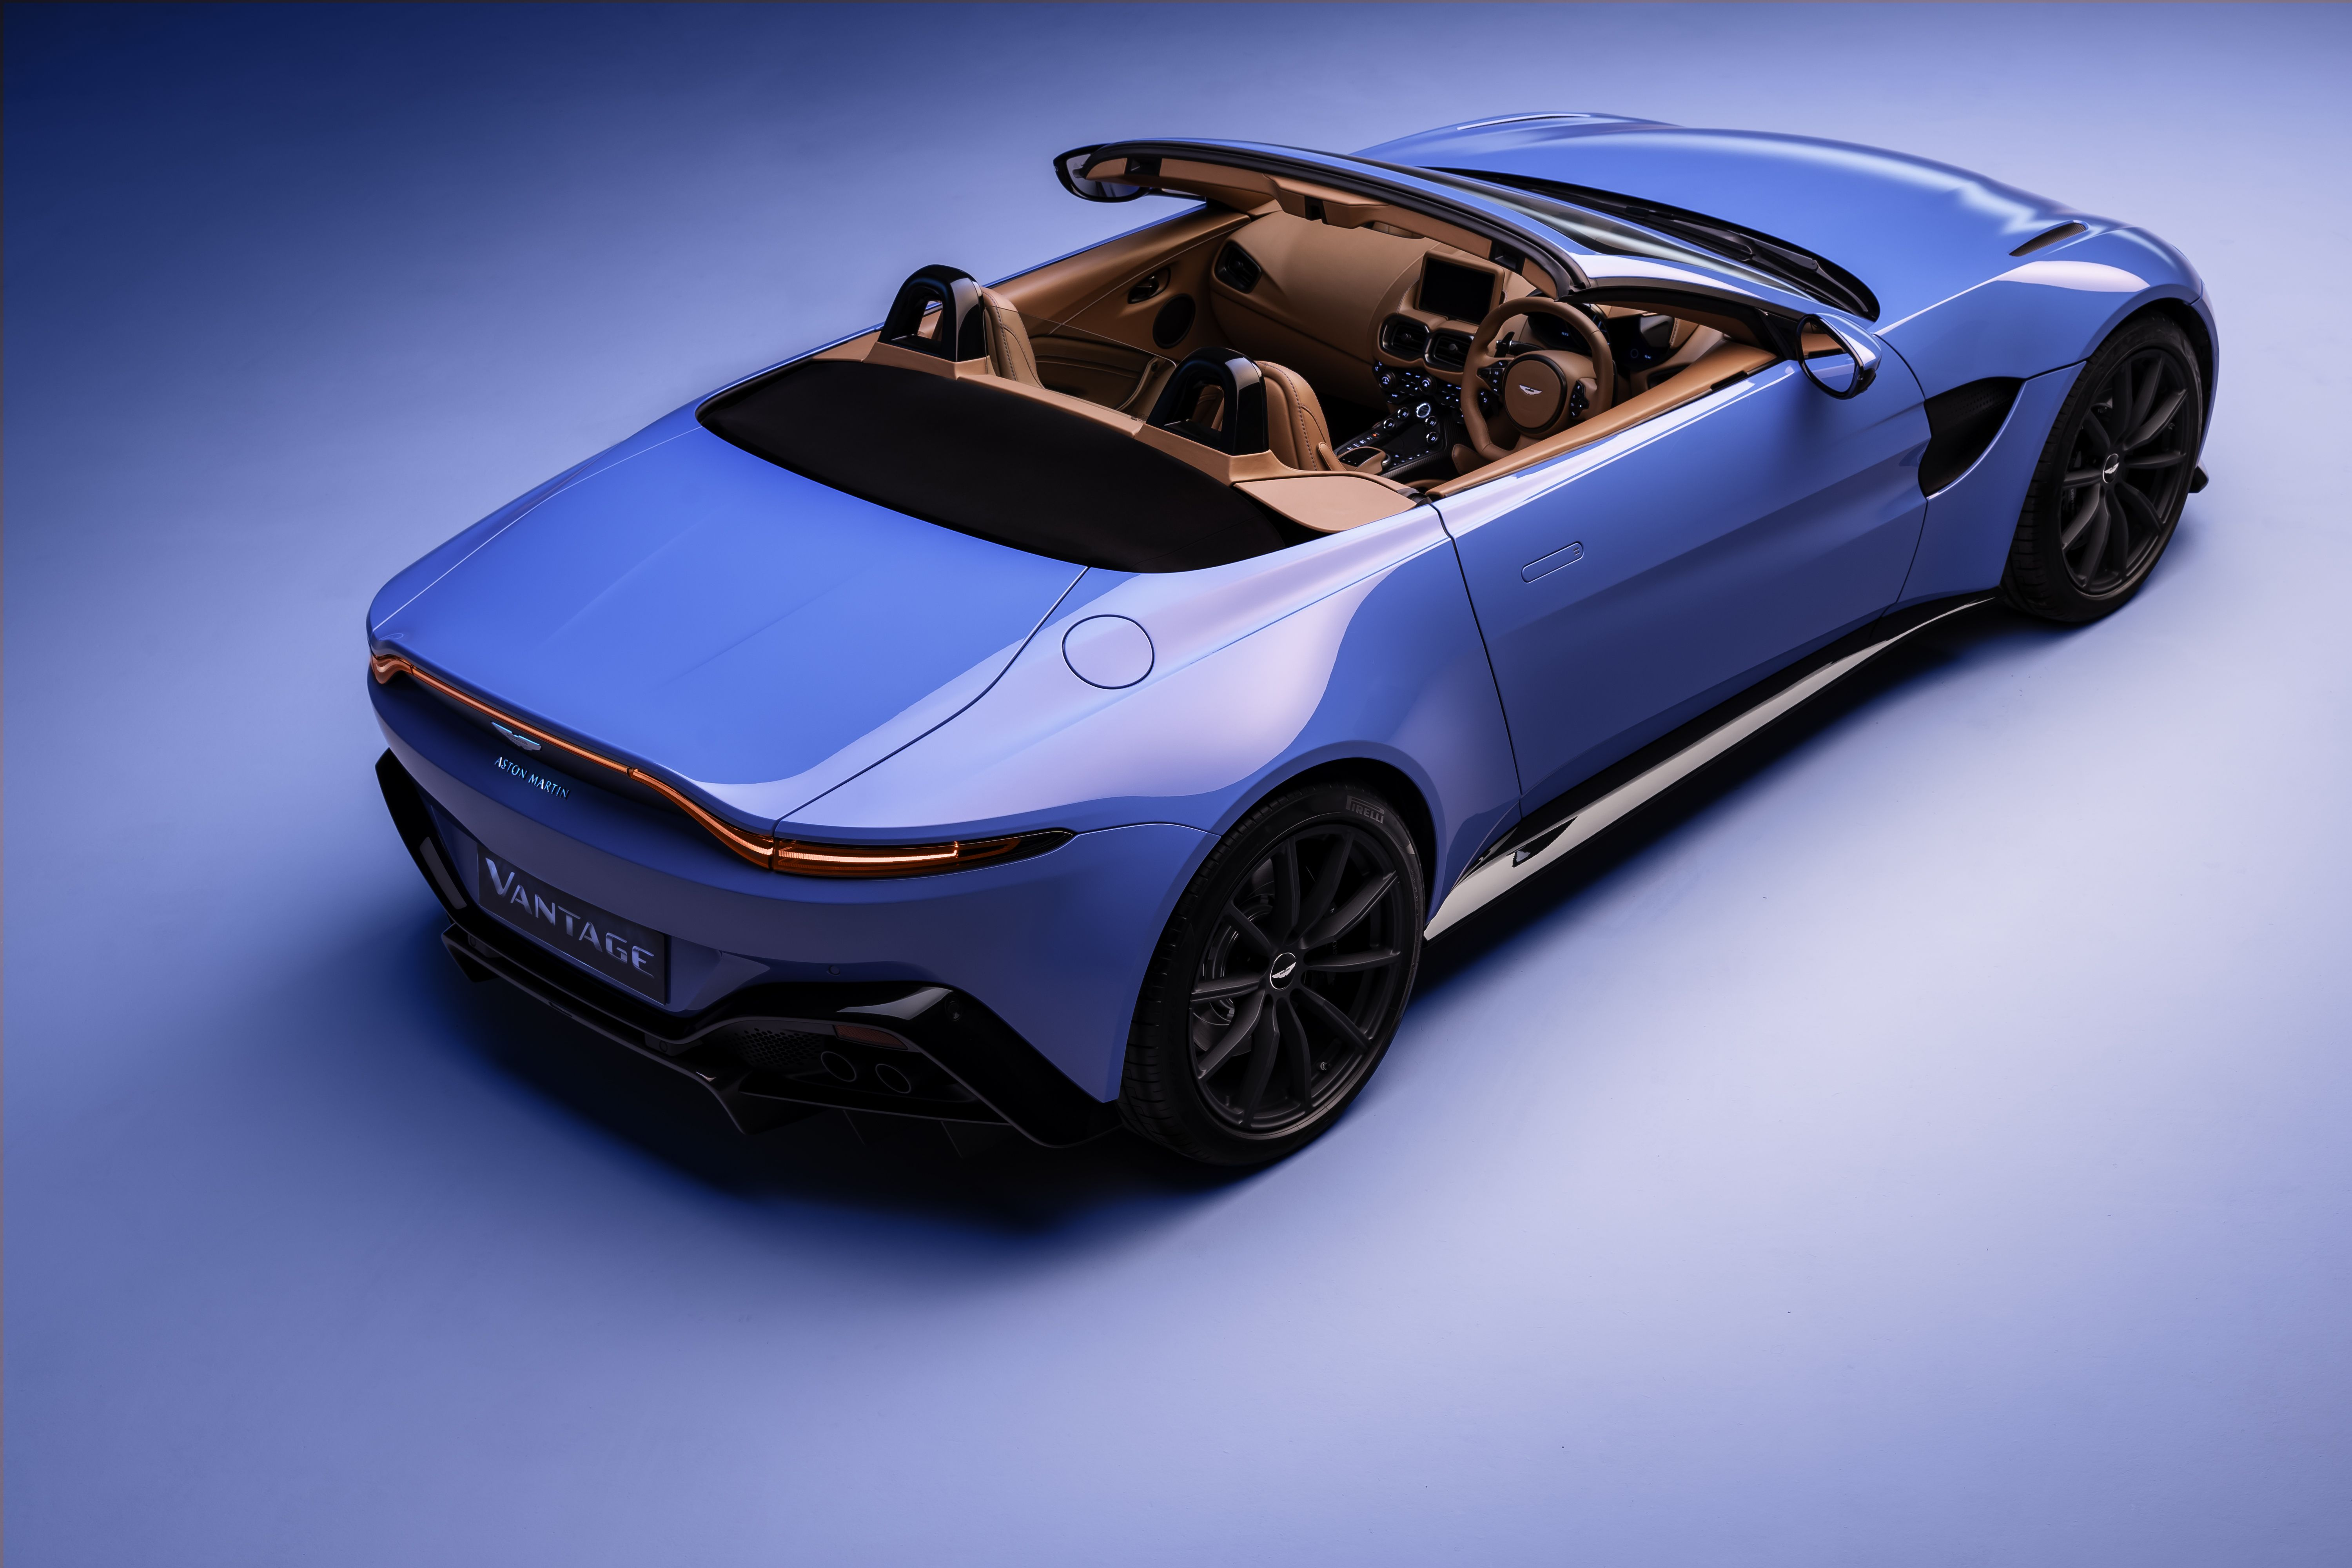 The 2021 Aston Martin Vantage Roadster Packs 503 HP and an Ultra-Fast Folding Top